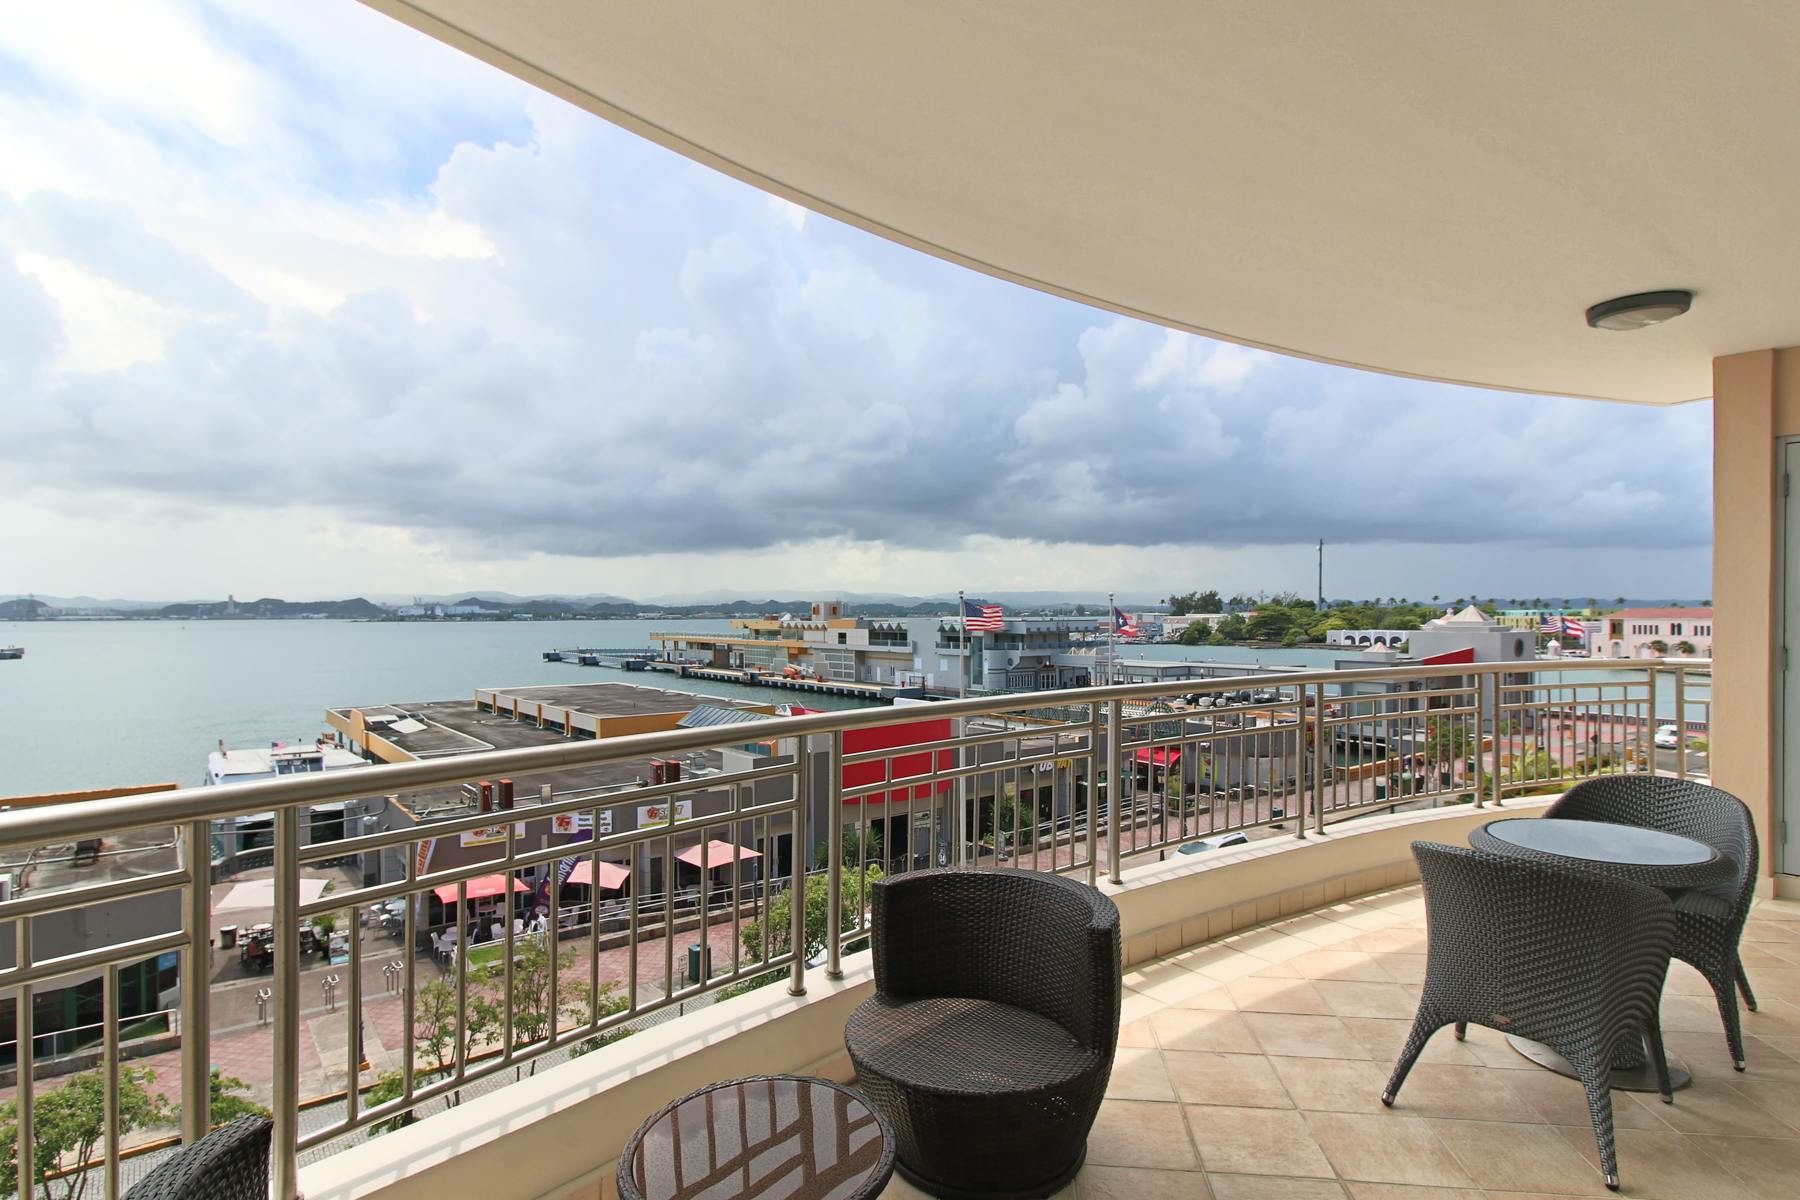 Additional photo for property listing at Alluring Contemporary at Harbor Plaza 105 Paseo Gilberto Concepcion de Gracia Apt 403 San Juan, Puerto Rico 00901 Puerto Rico